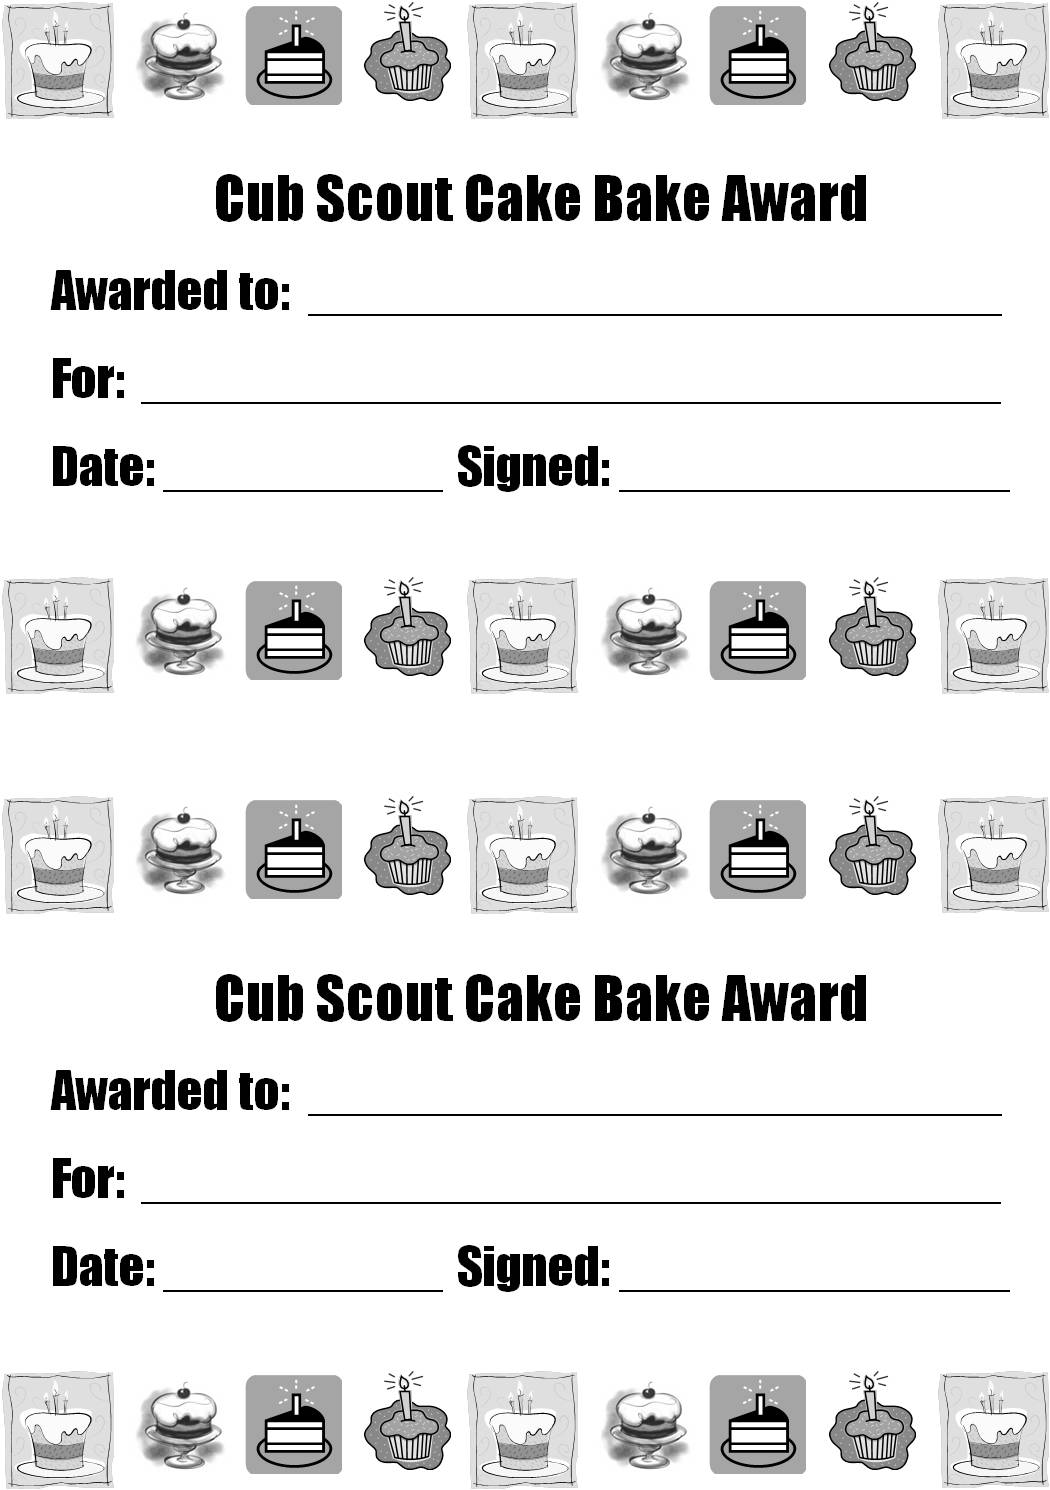 Strong armor cub scouts blue gold dinner cake bake awards cub scouts blue gold dinner cake bake awards yadclub Gallery